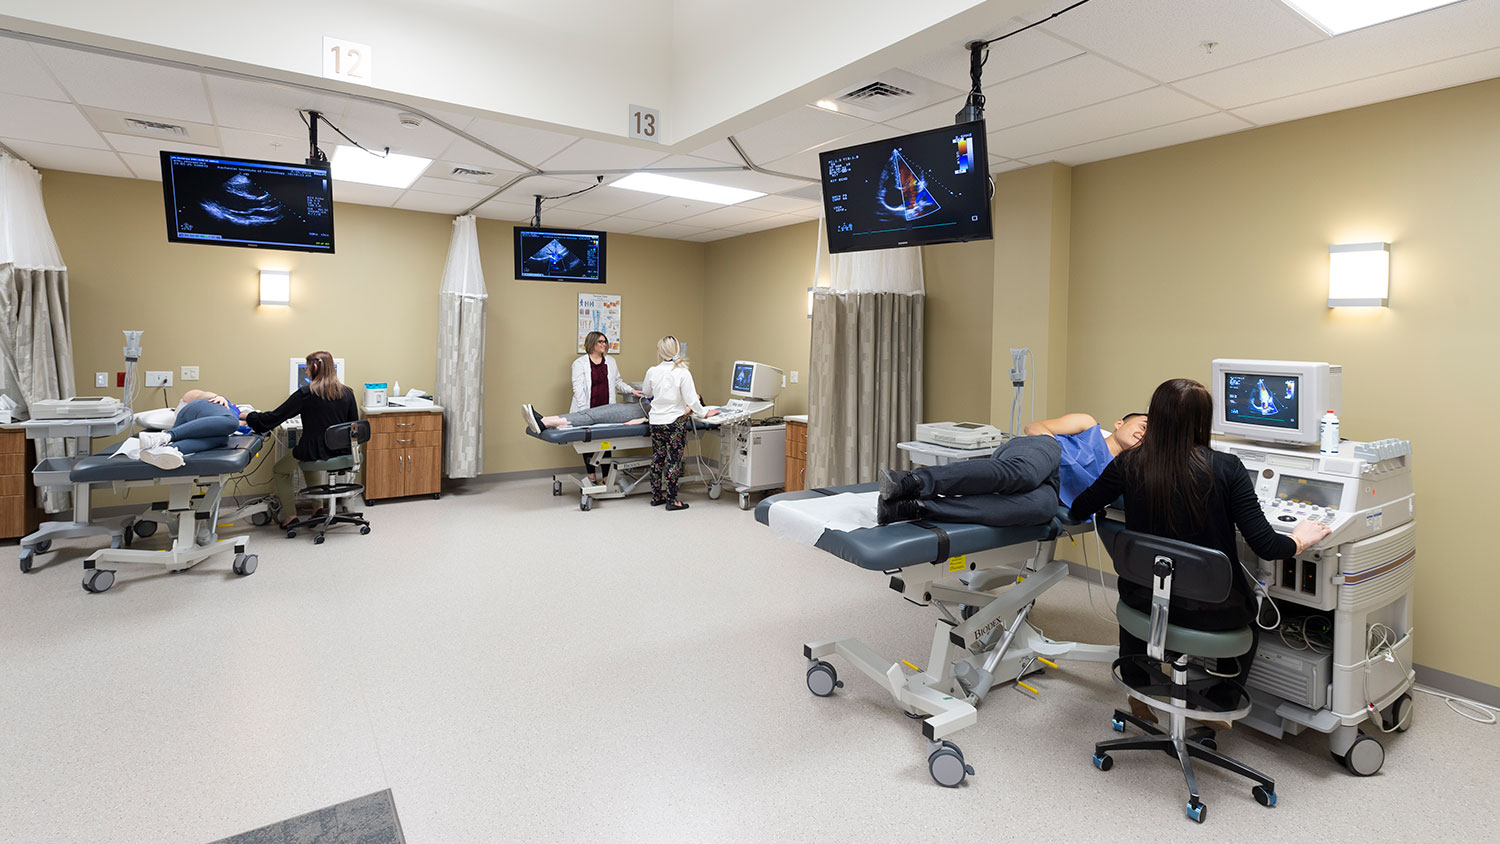 a hospital room with 3 patients all using ultrasound scanners with TVs on the wall showing the scan imagery